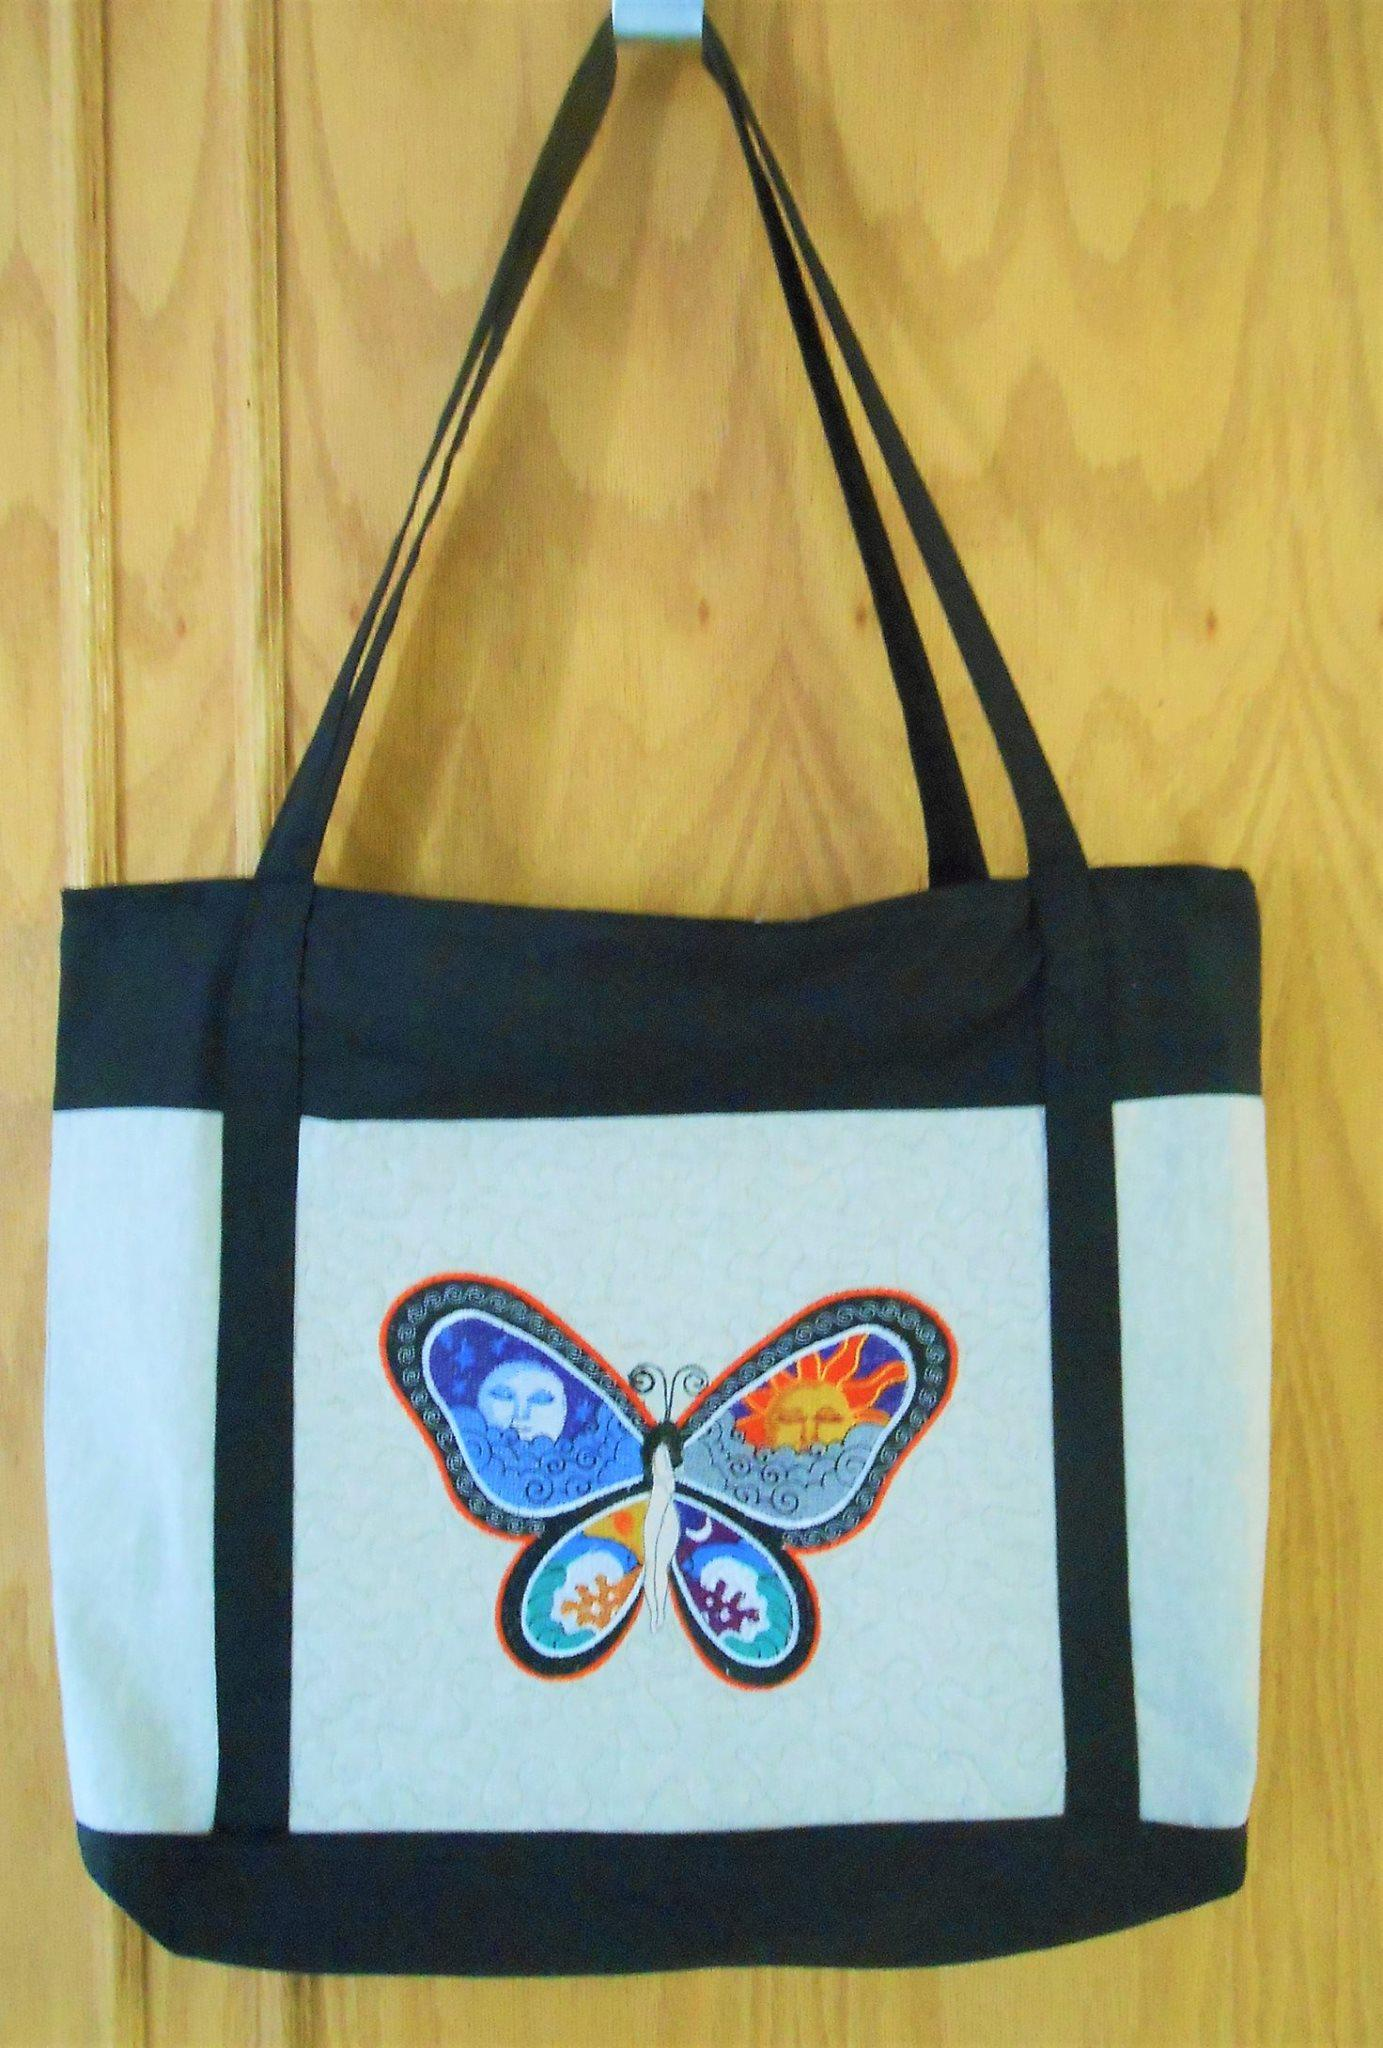 Hanbag with Fantastic Butterfly Night and Day free machine embroidery design